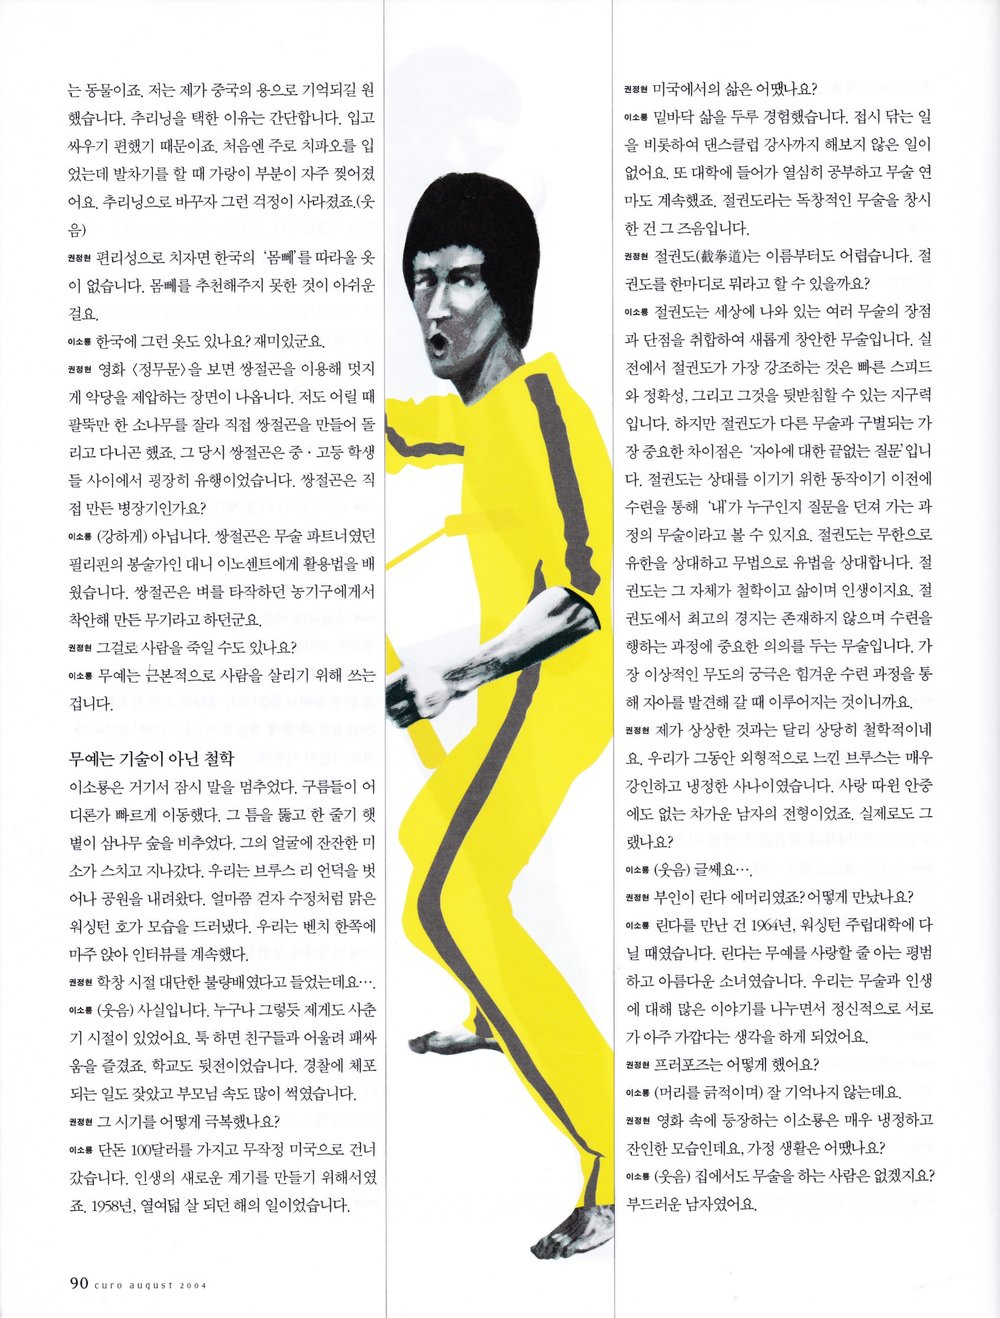 Bruce Lee | Curo, August 2004